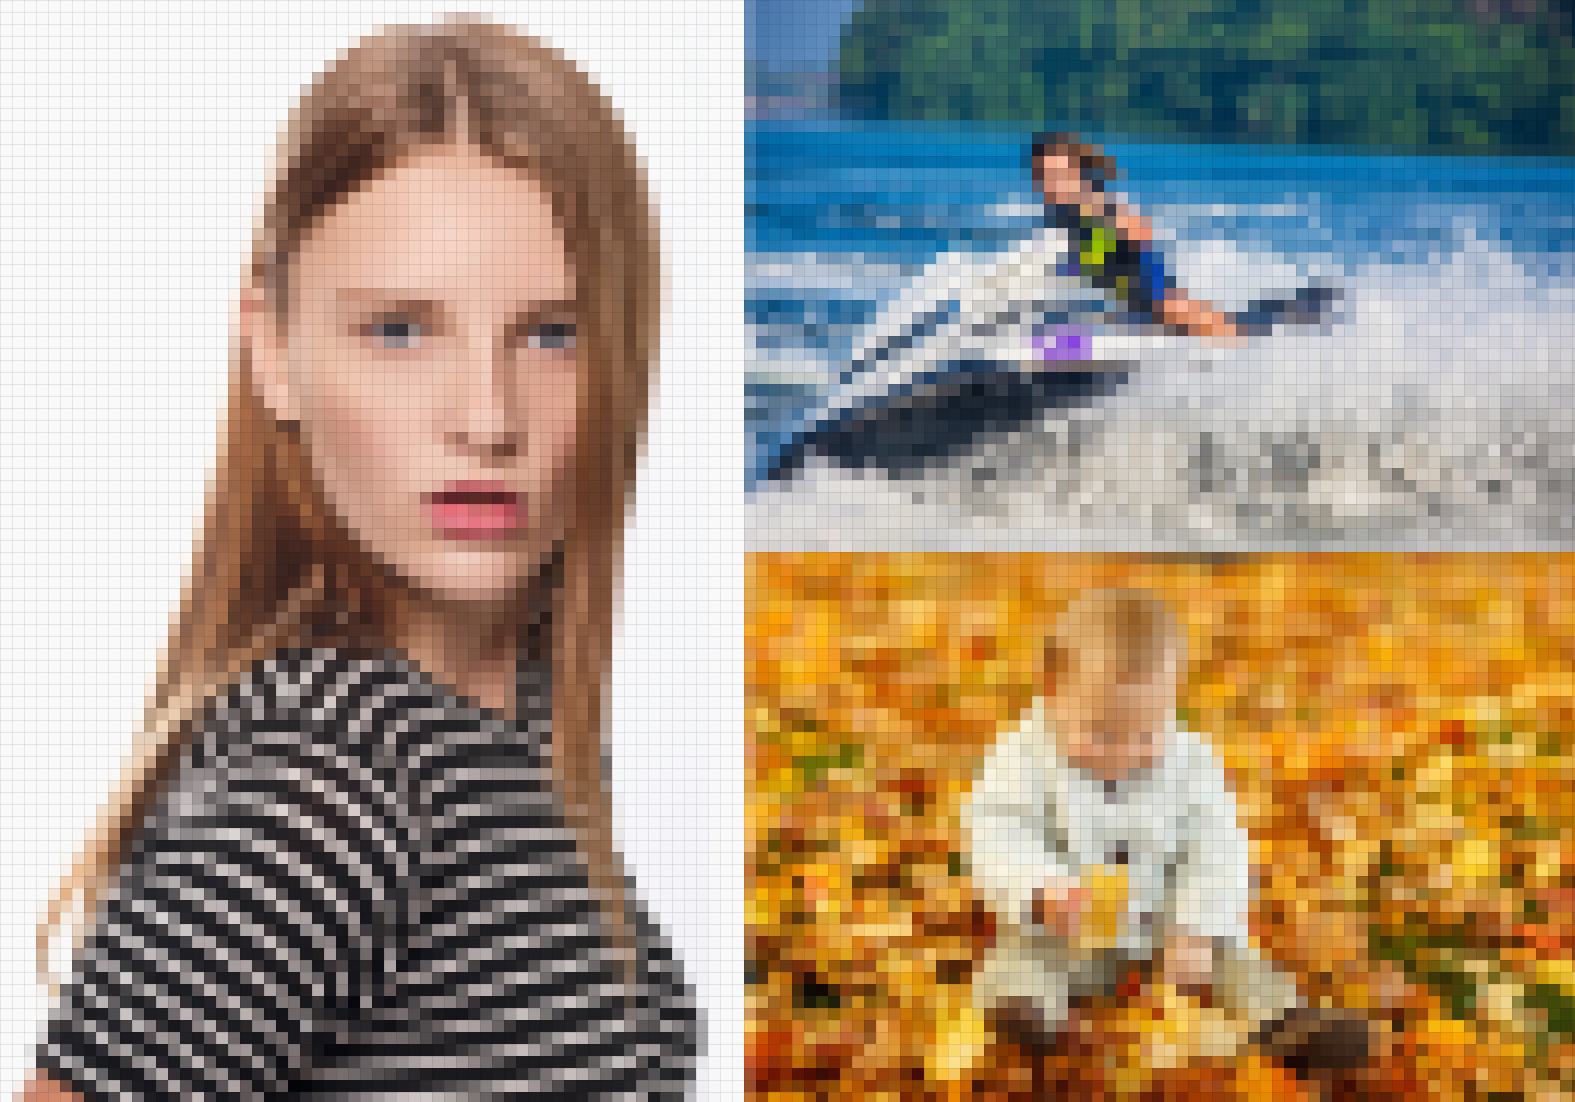 Photoshop Photo Line Art Effect : Pixel photo effect in photoshop with mosaic filter